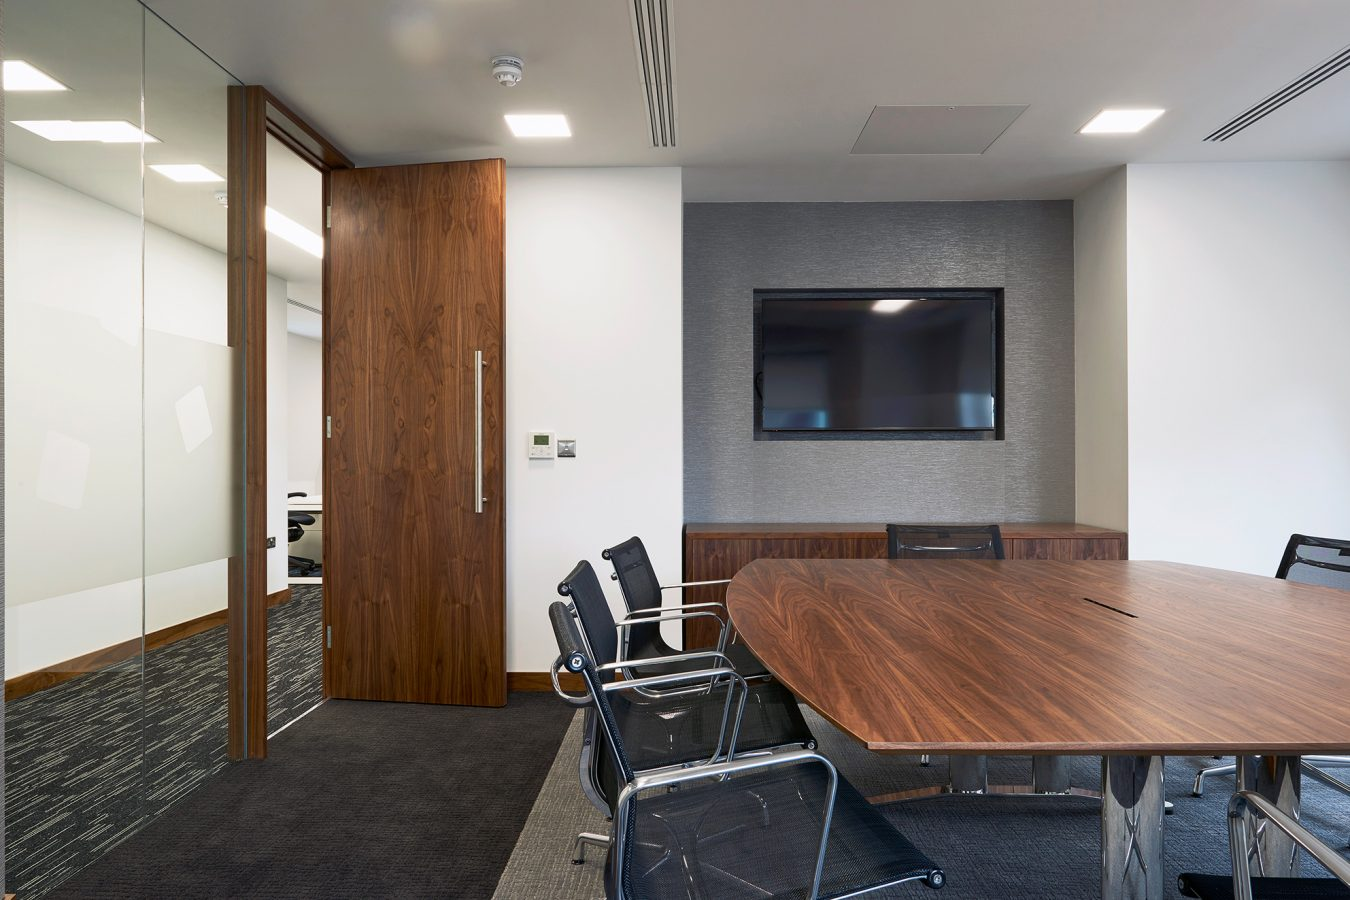 Meeting room fit out, refurbishment solutions for office, laminate wood furniture, near London.